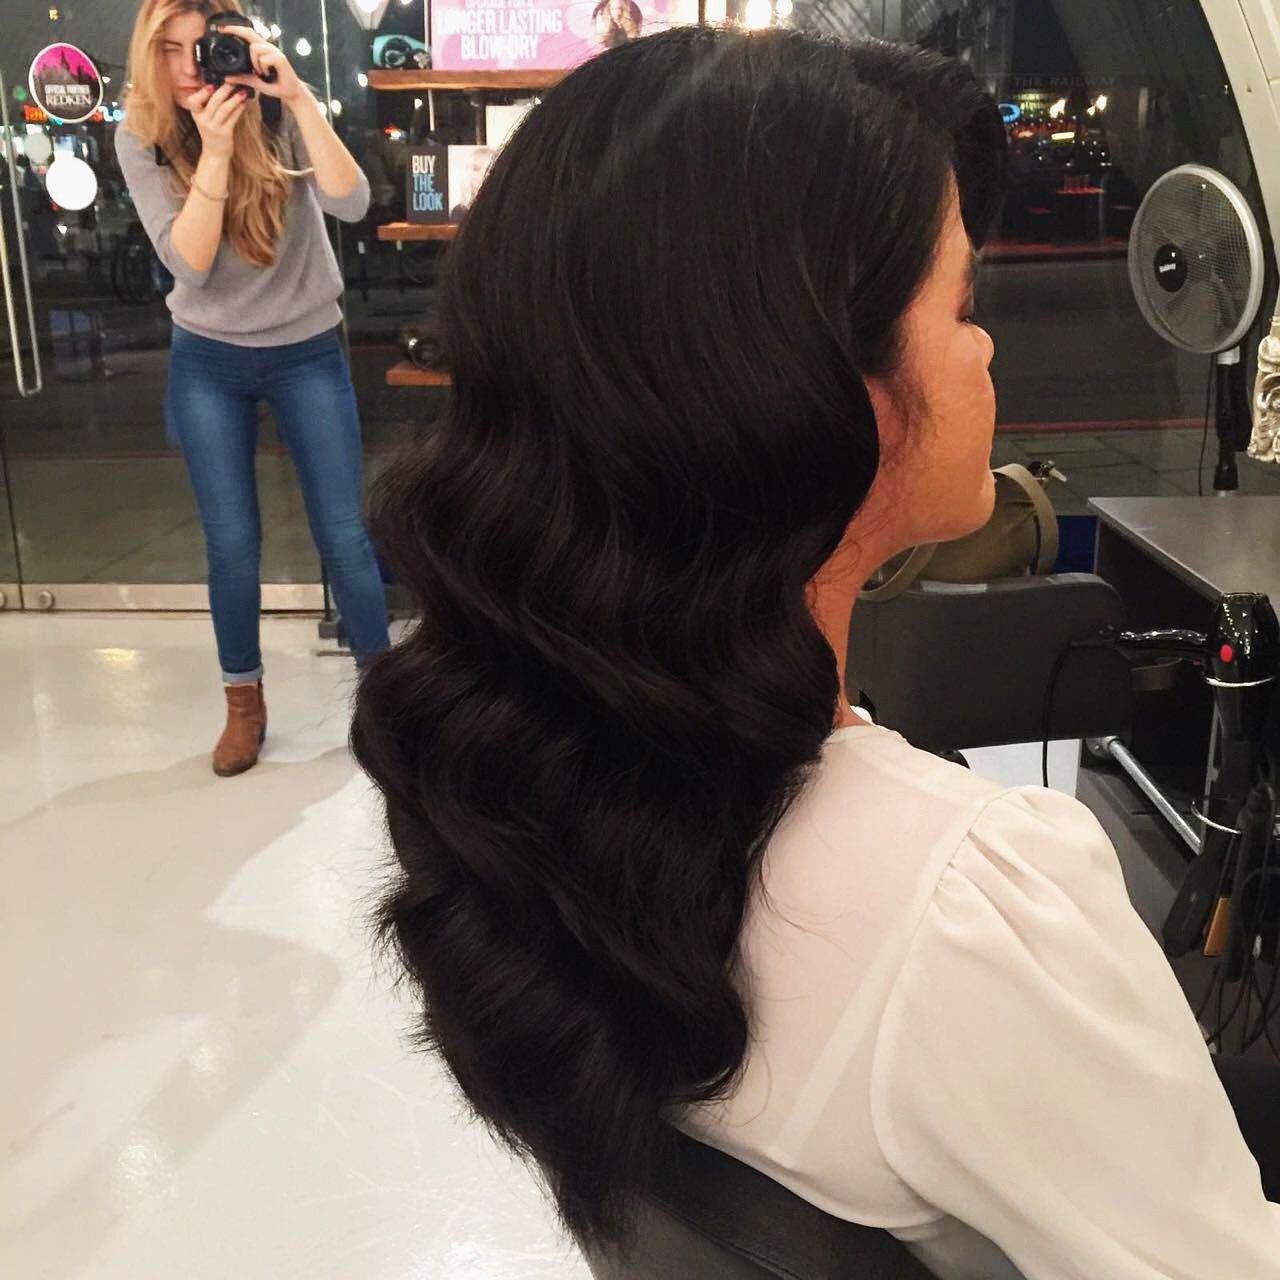 Wavy Blow Dry On Long Dark Hair London Hairdresser For More Hairstyles And Our List Of Hair Services Visit W London Hair Salon Best Hair Salon Long Dark Hair